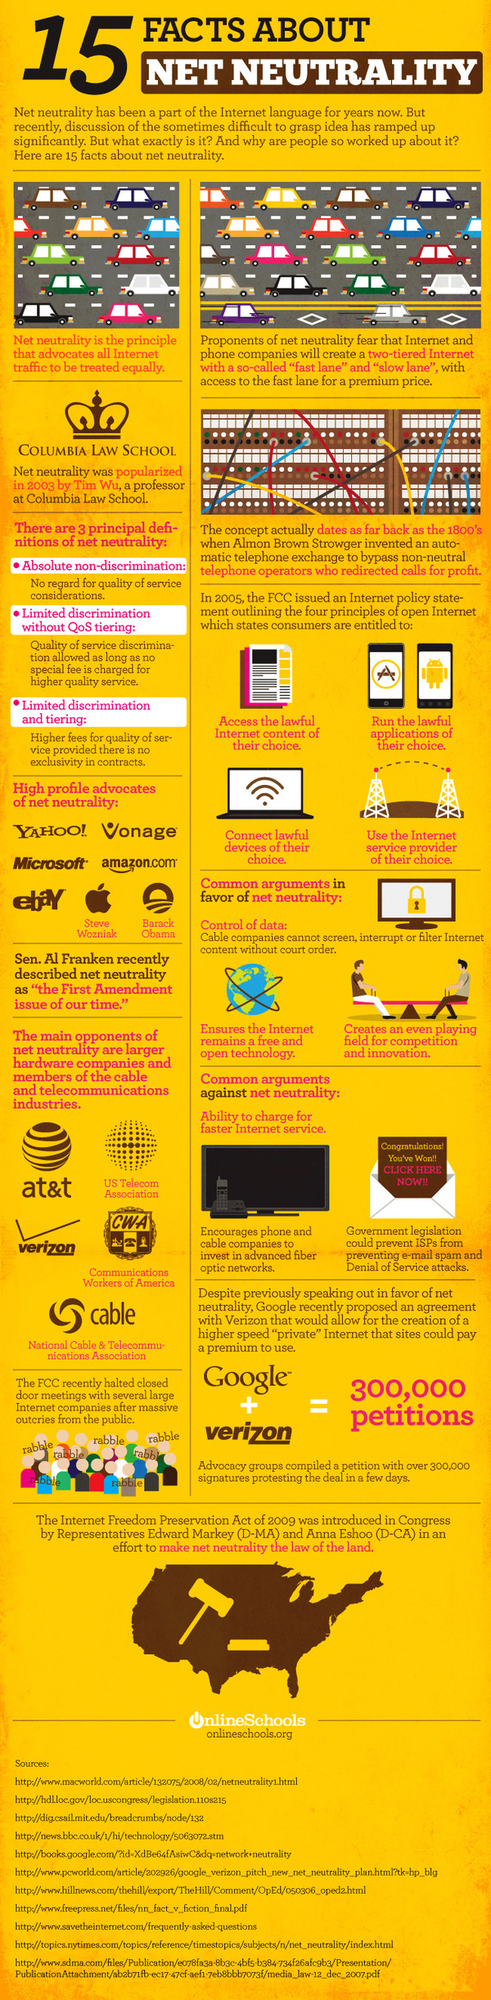 Net Neutrality - The Infographic